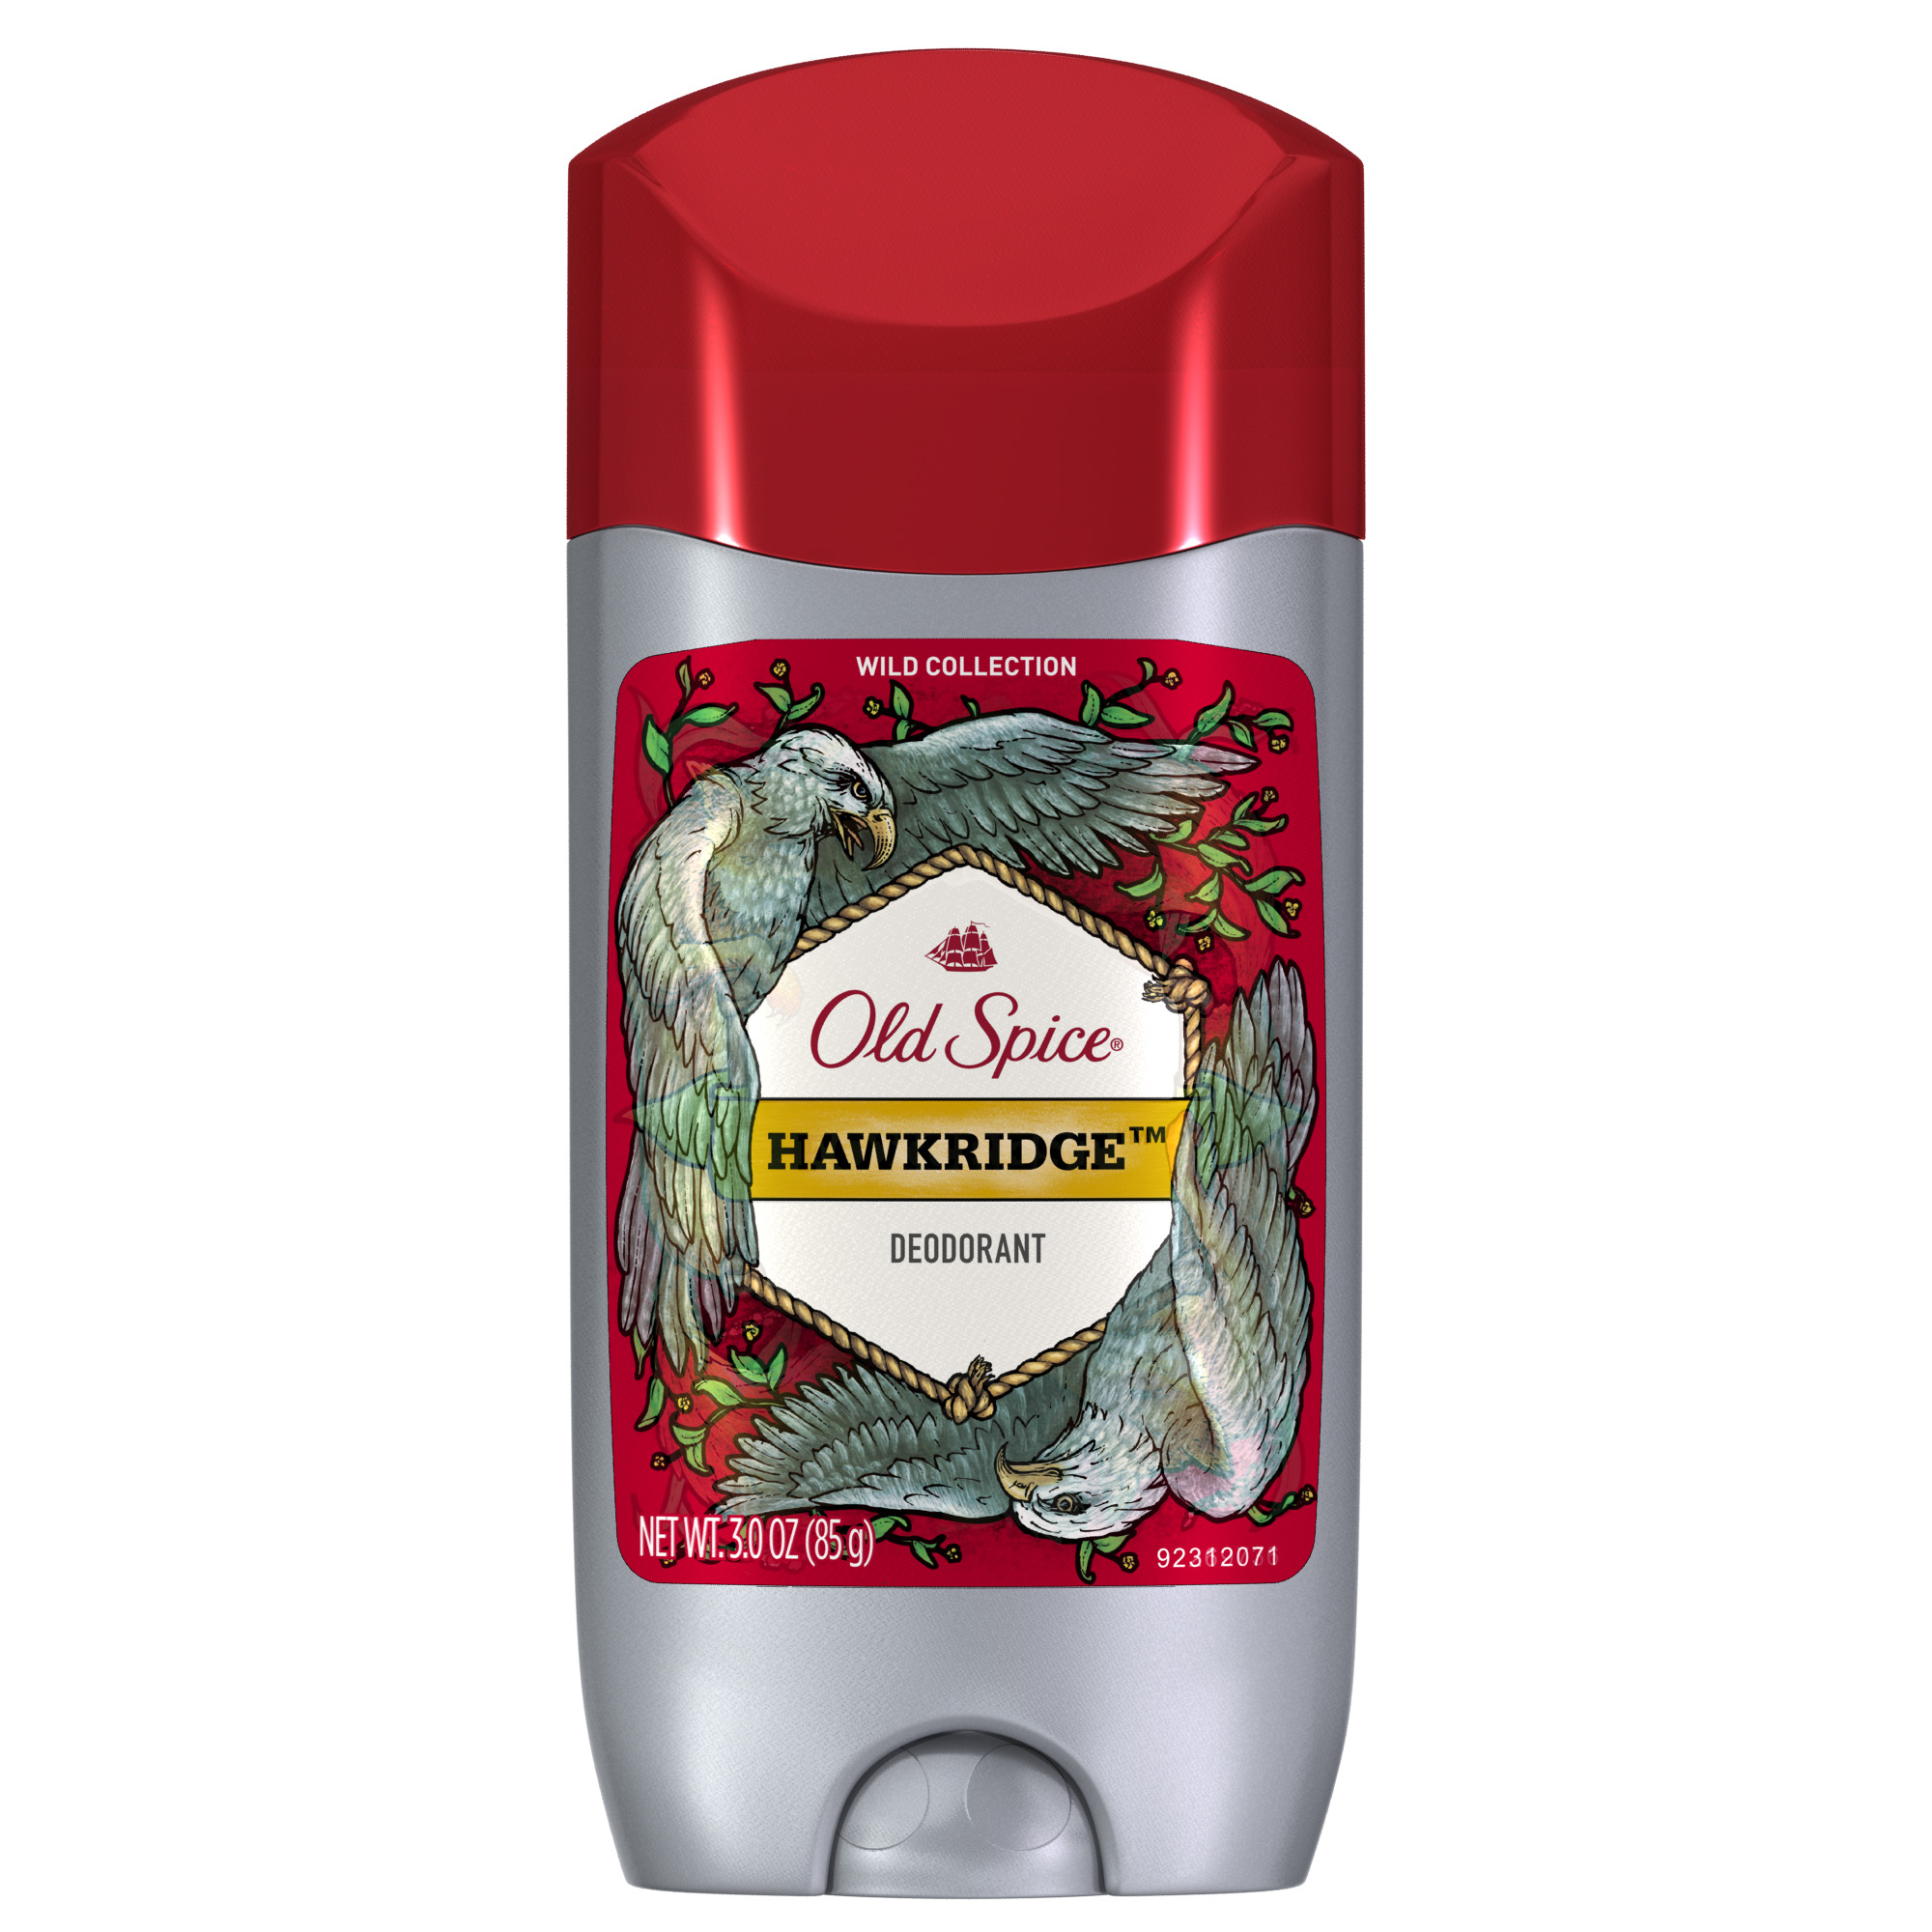 Old Spice Wild Hawkridge Scent Deodorant for Men, 3 oz